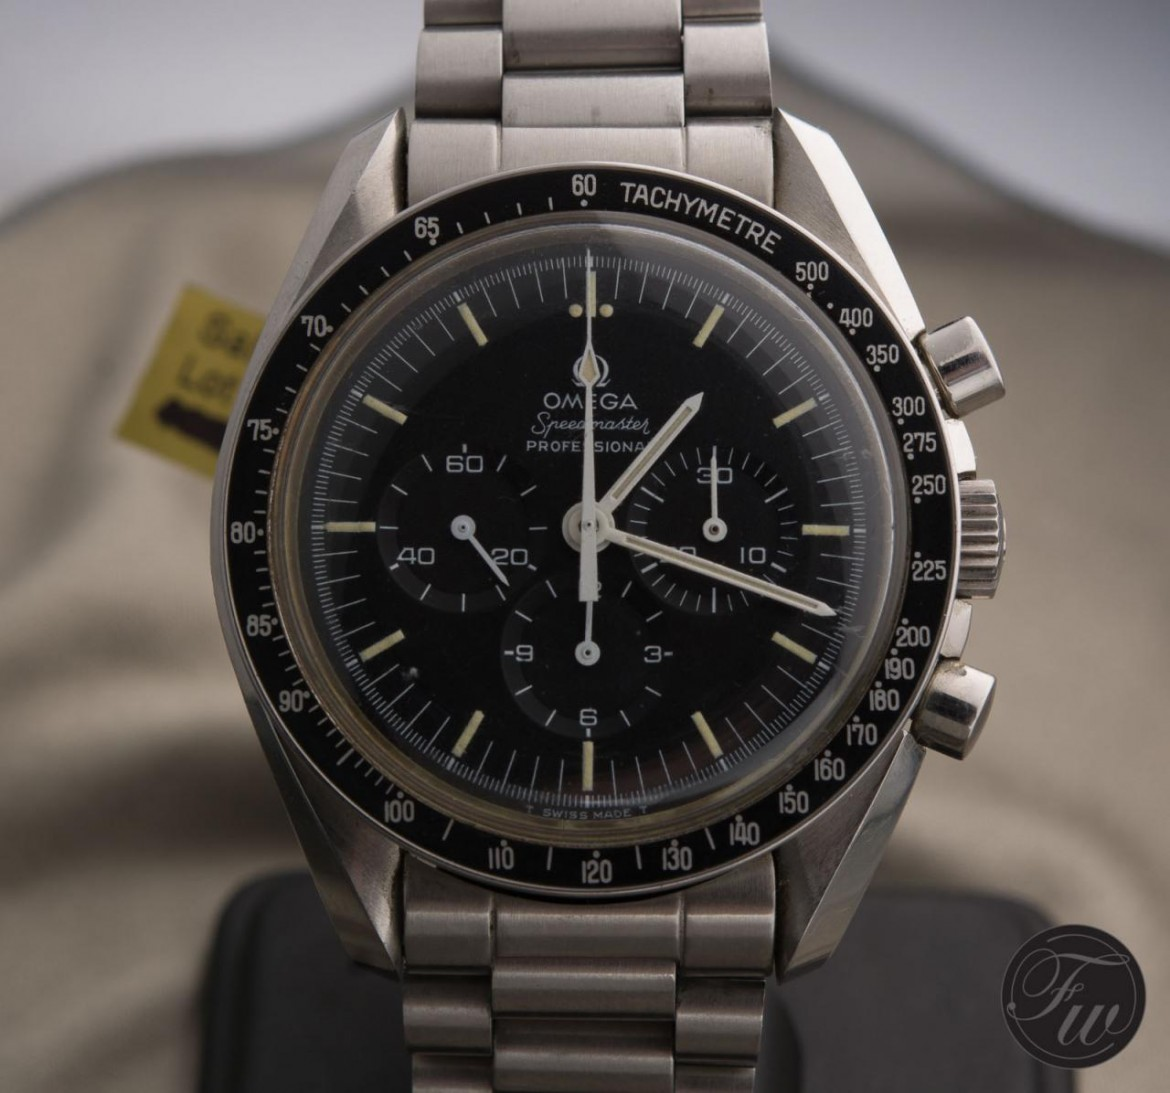 Presenting The Chronograph Omega Speedmaster Professional Flown Apollo 17 Replica Watch For Men